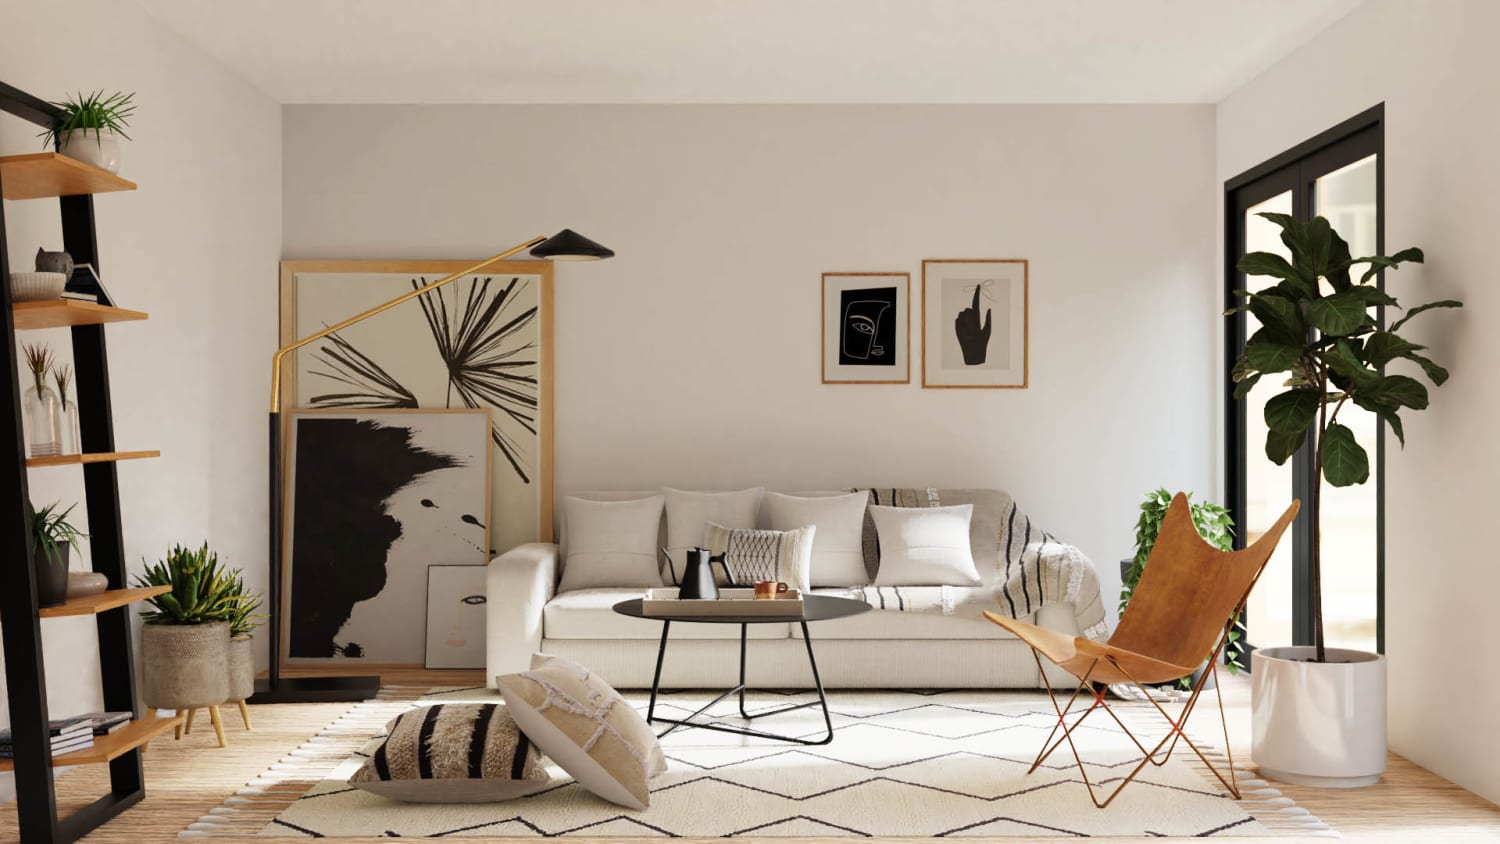 Black+White: Urban Minimalist Home Design By Spacejoy